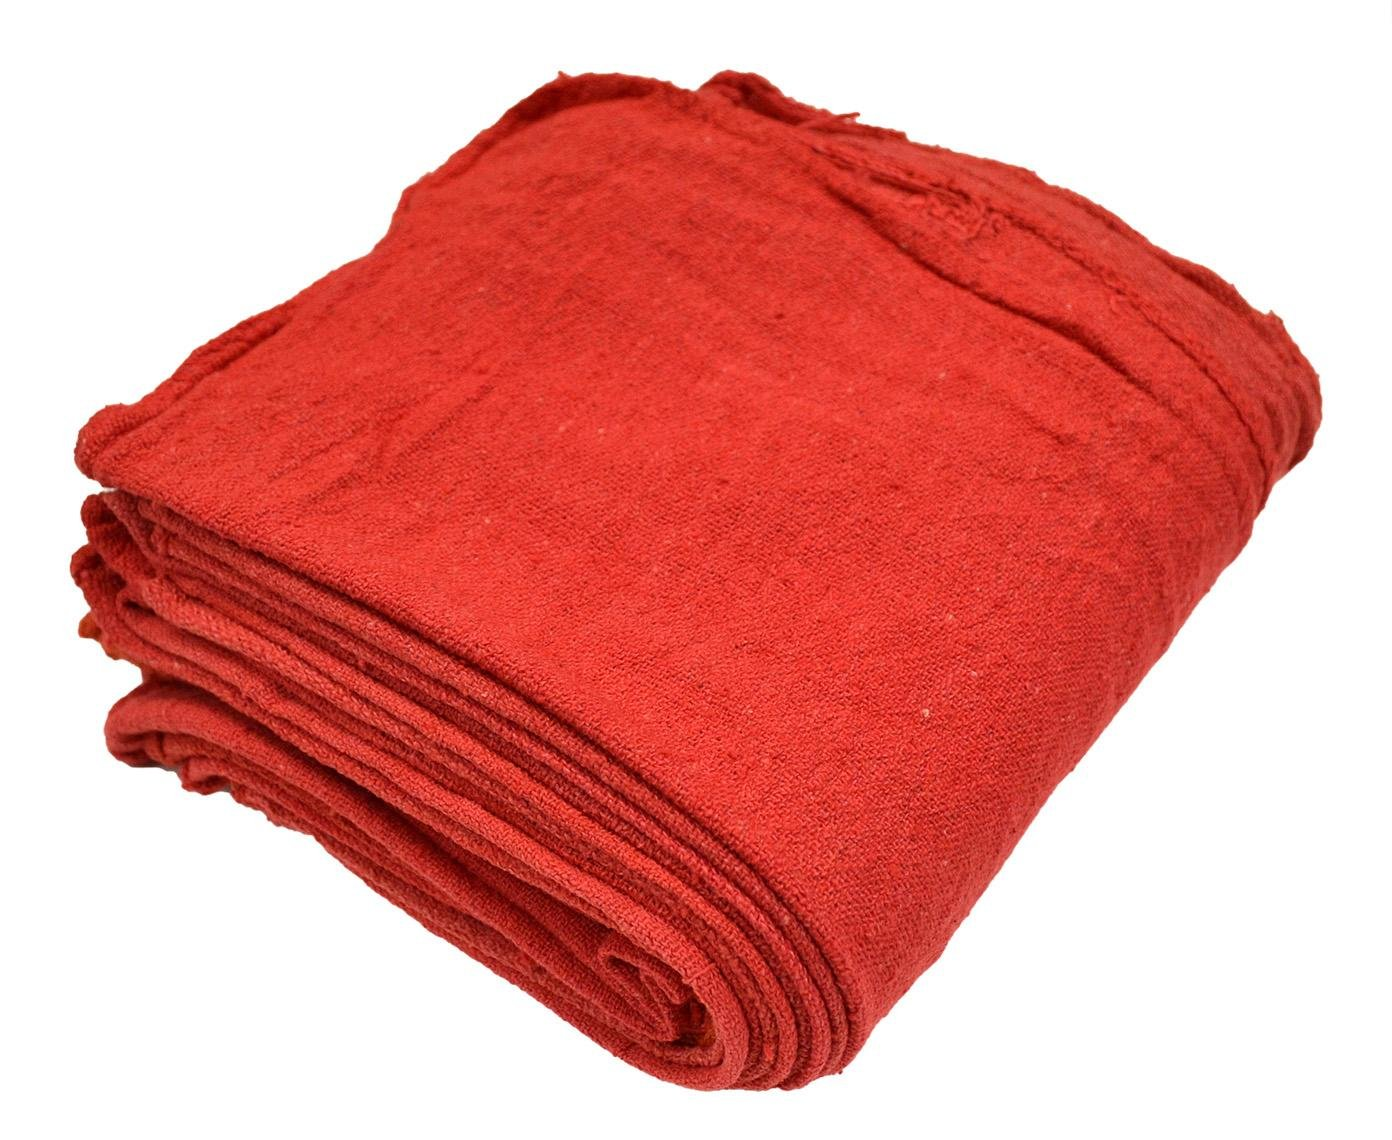 Reusable Commercial Grade 100/% Cotton Washable Cleaning Cloths Red Shop Towel Perfect Shop Rags for Mechanic Work Size 12 x 14 Inches